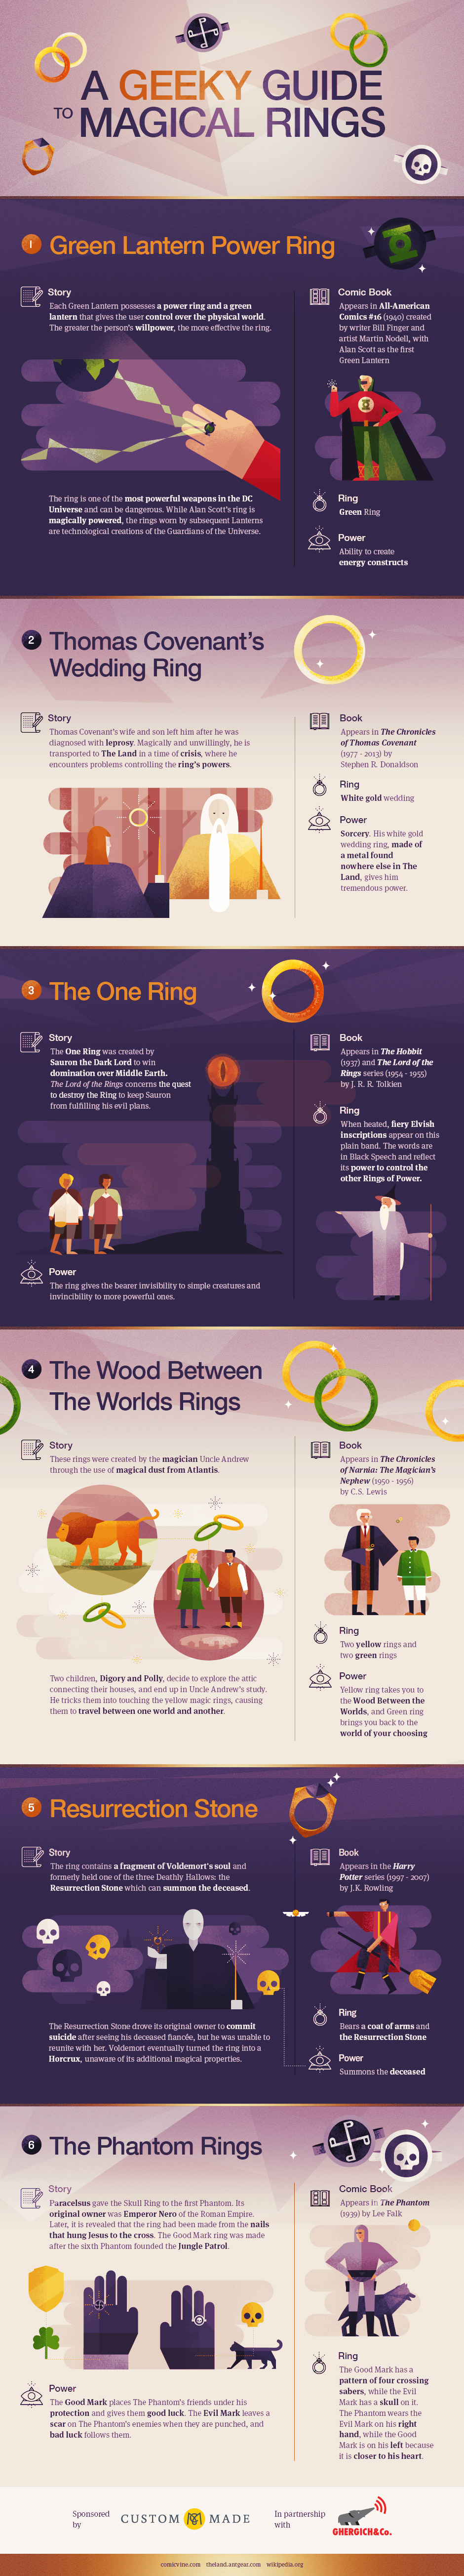 CustomMade A Geeky Guide to Magical Rings Infographic